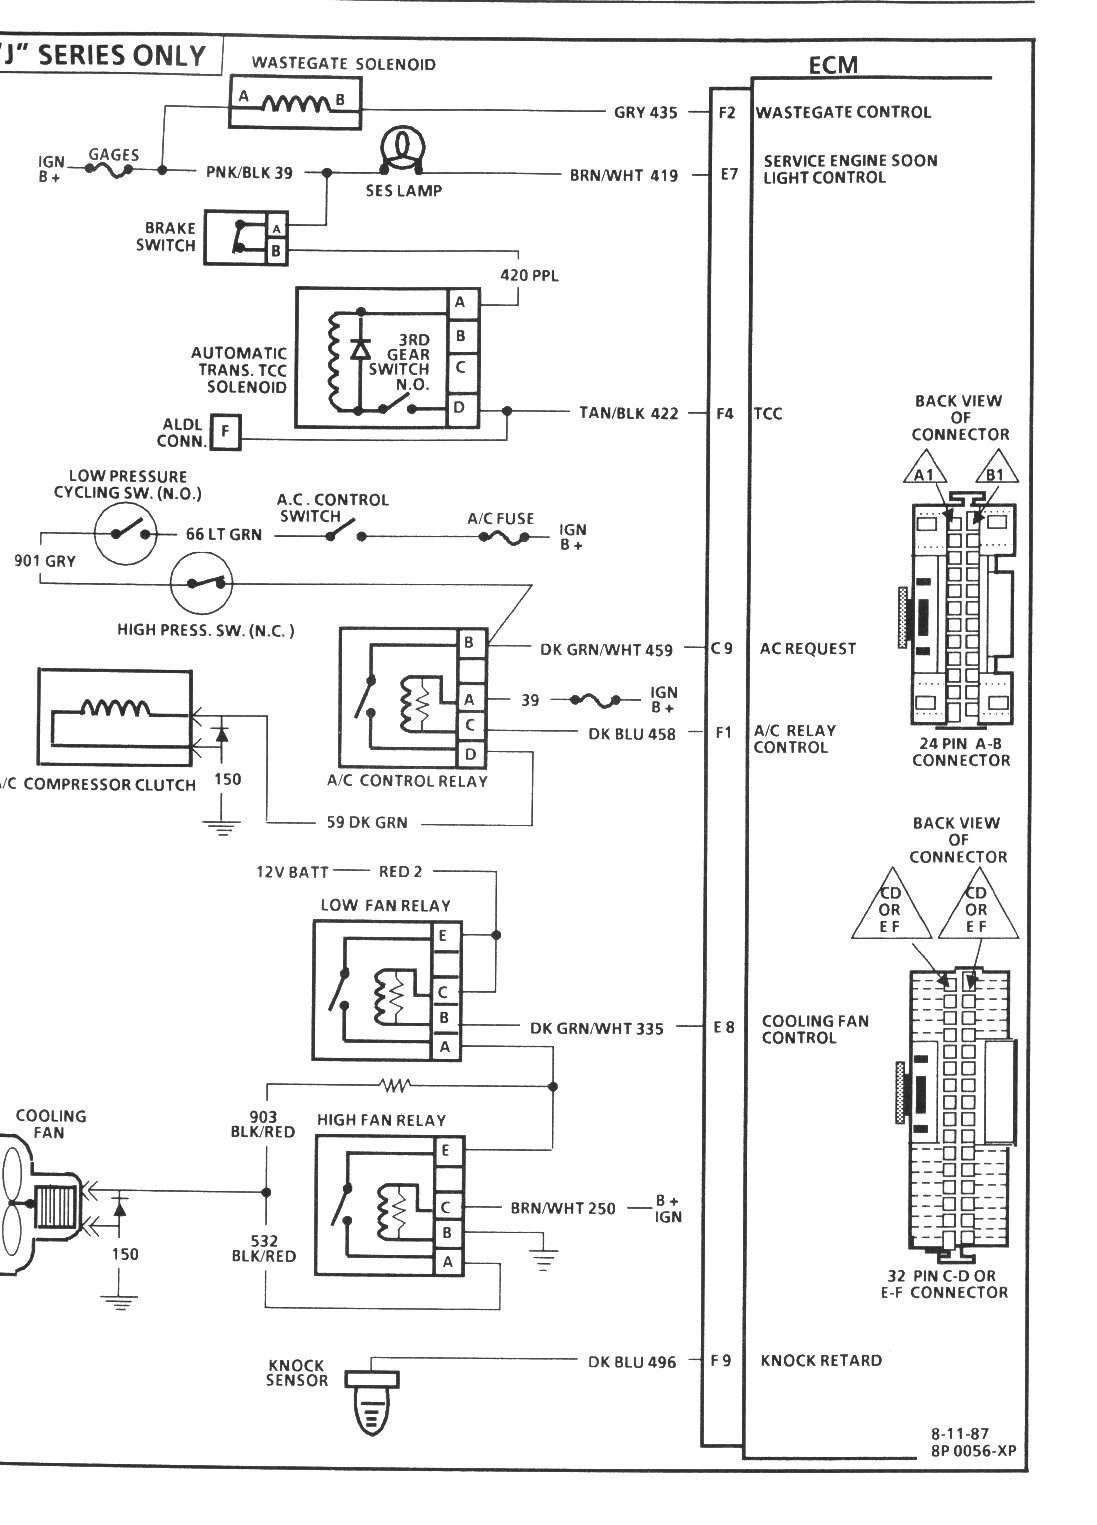 Ddec 3 ecm wiring diagram on nwstp forum AC Servo Motor Wiring Diagram DDEC 6 Wiring Diagram